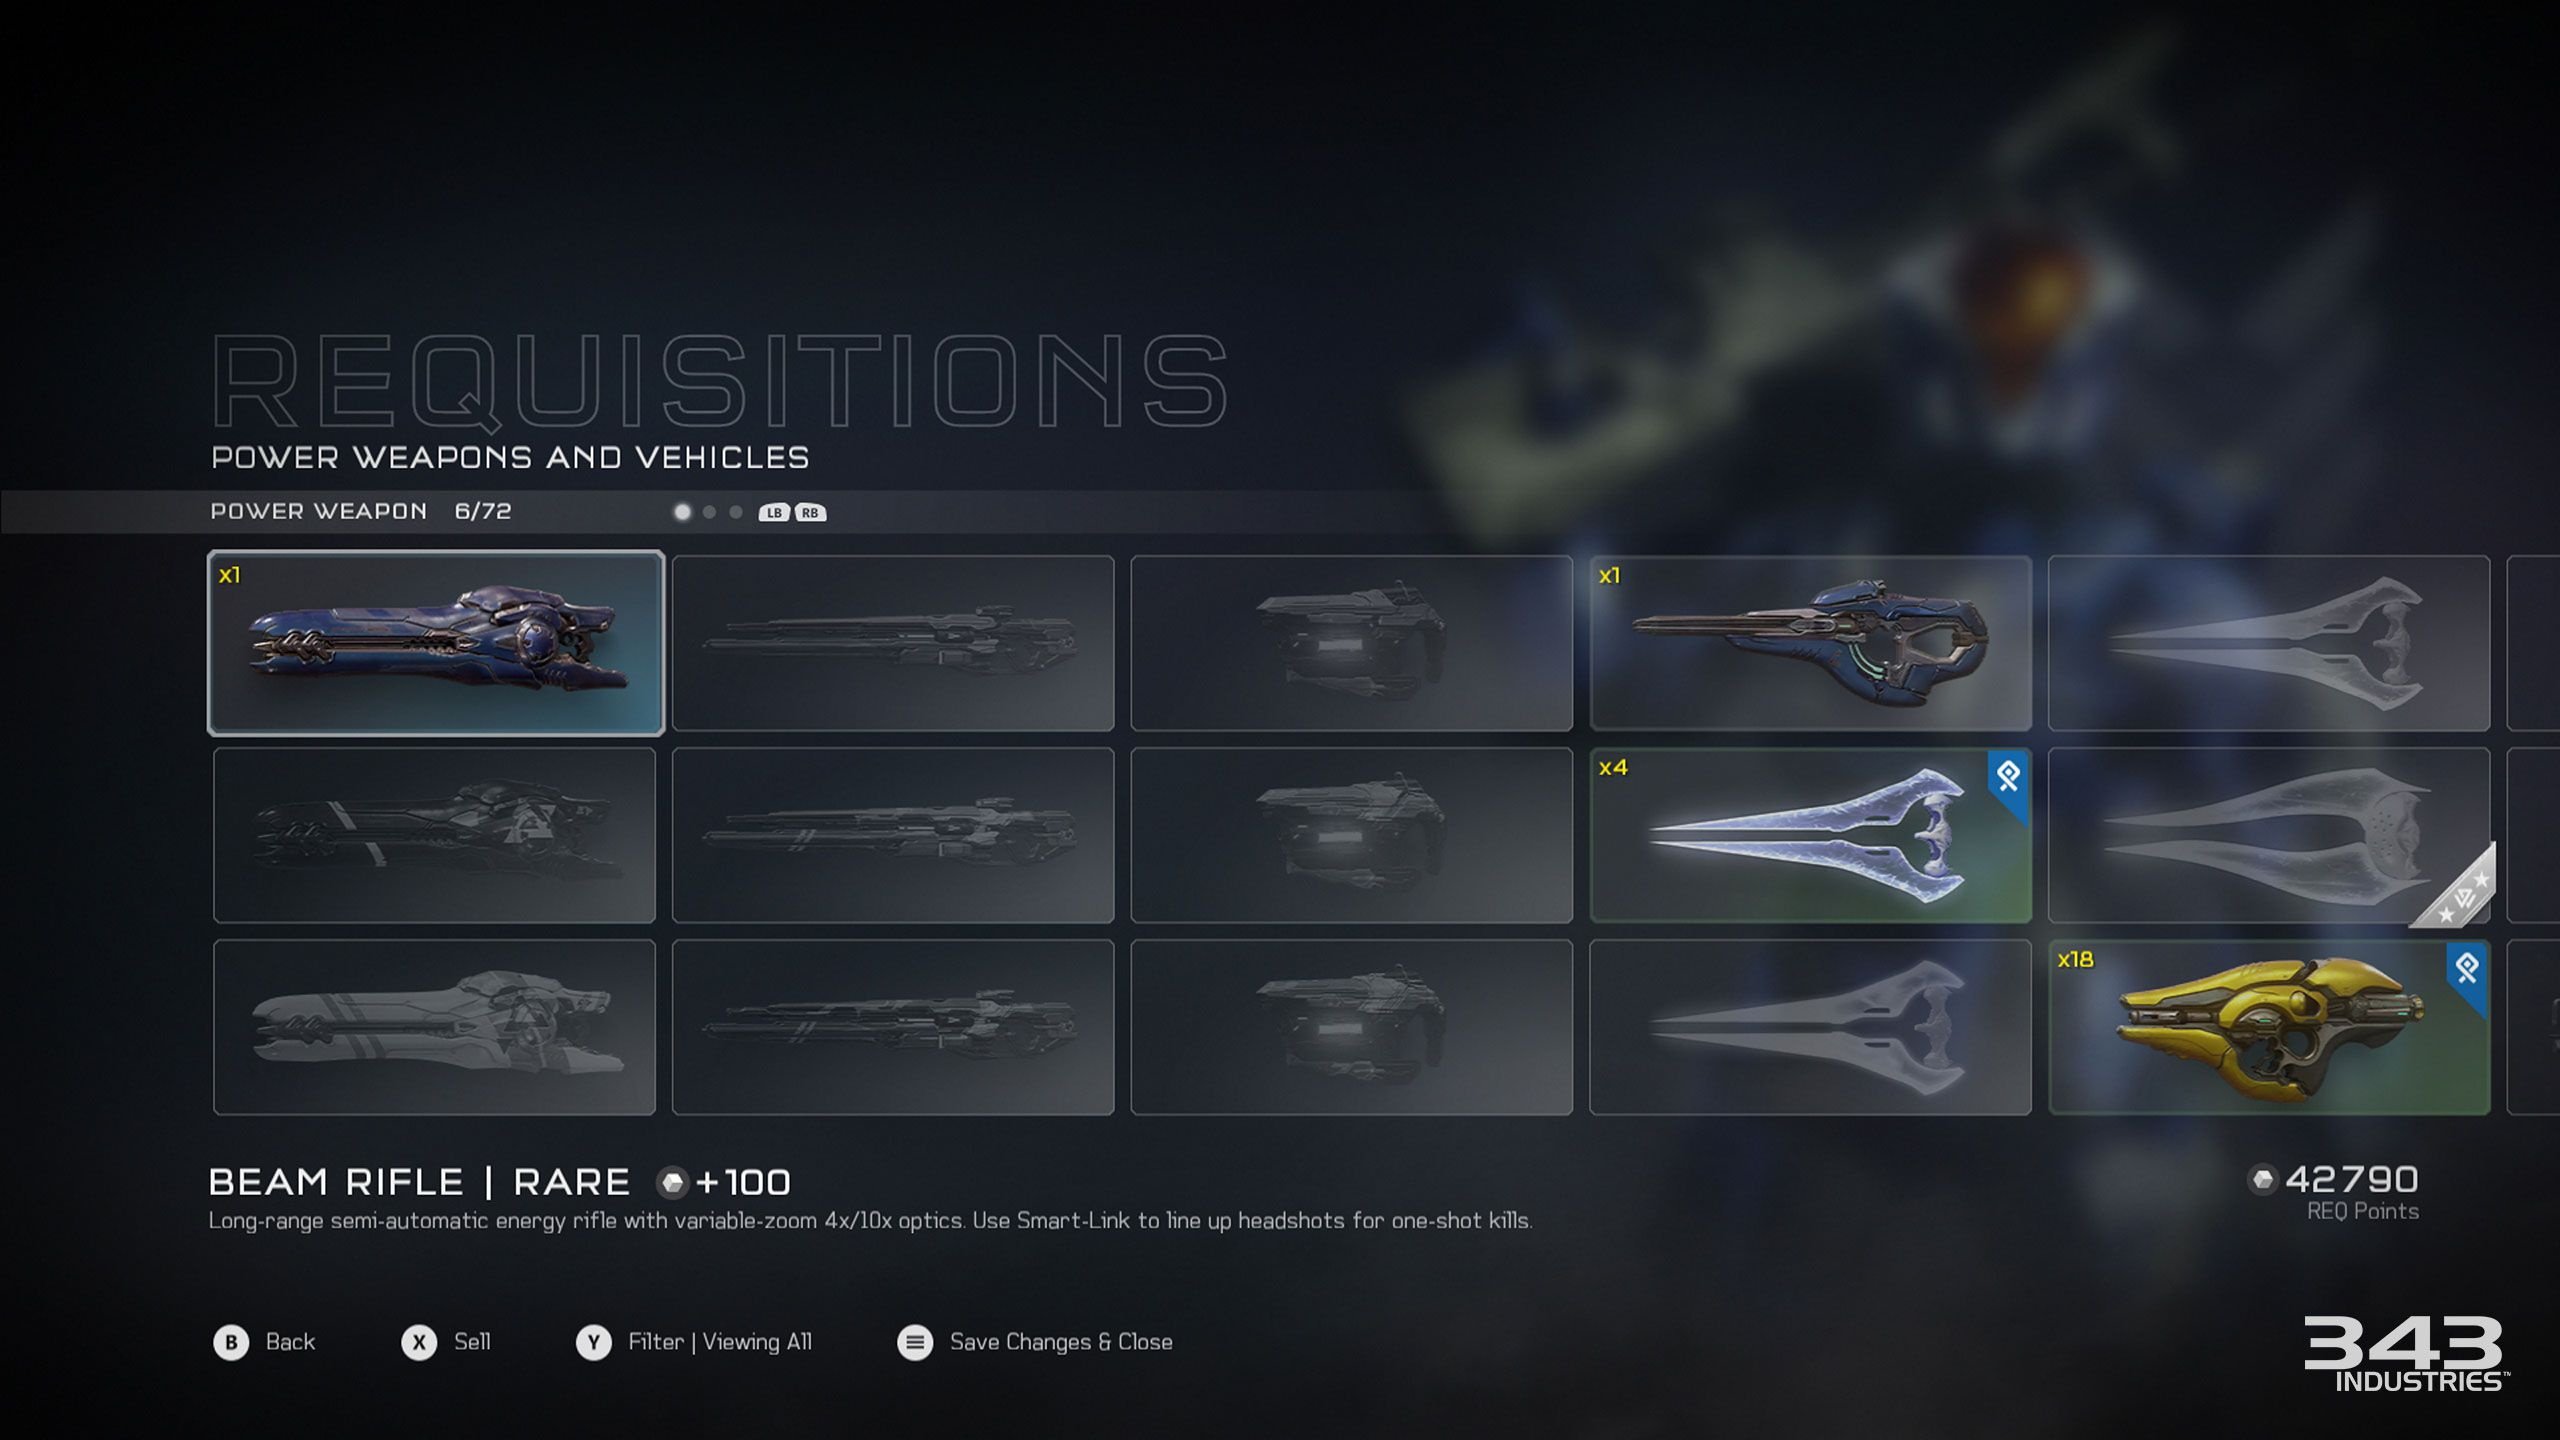 halo 5 review screen 6 requisitions